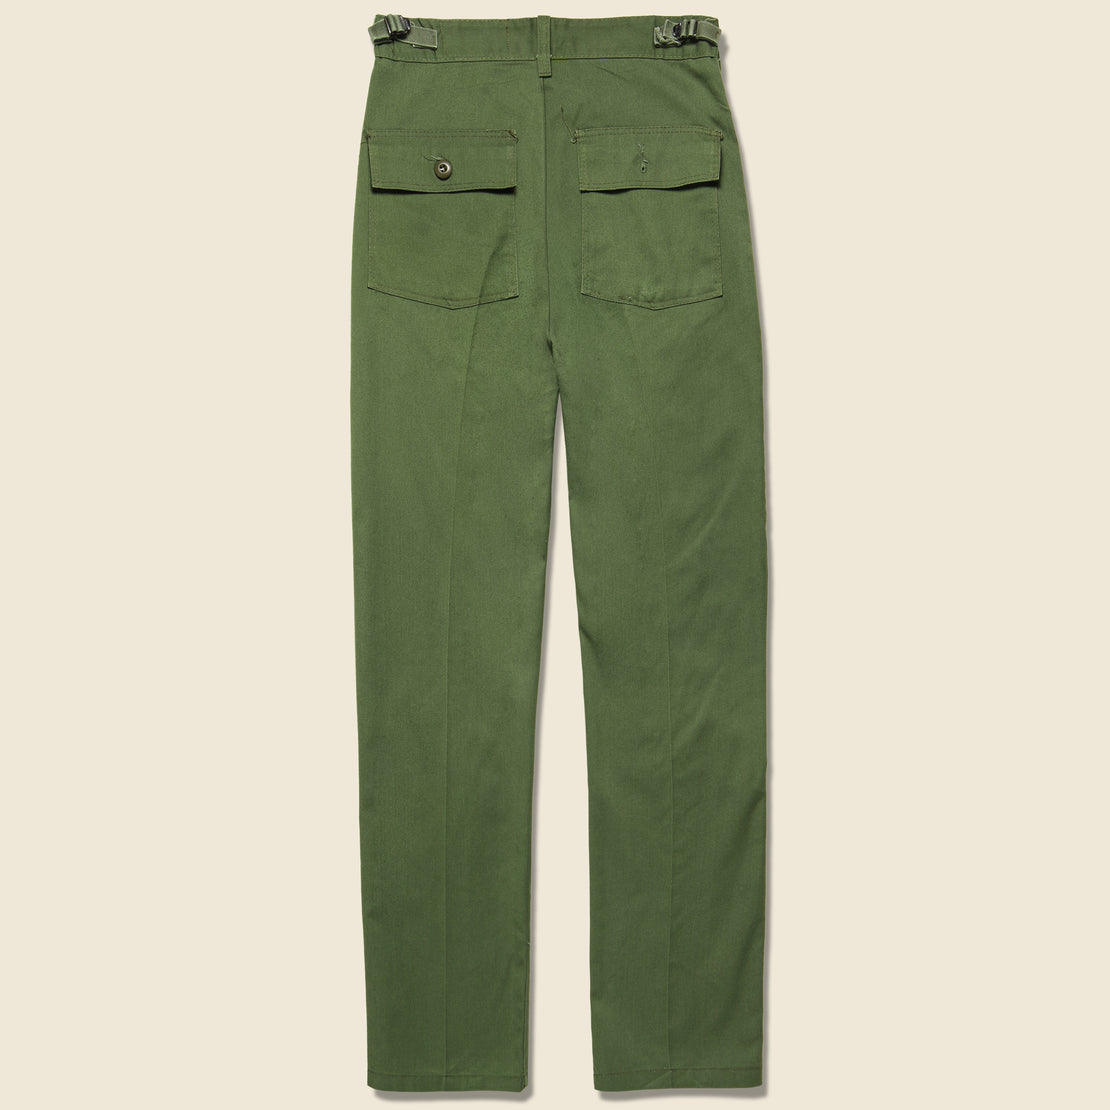 Floral Flourish Military Pant - Green